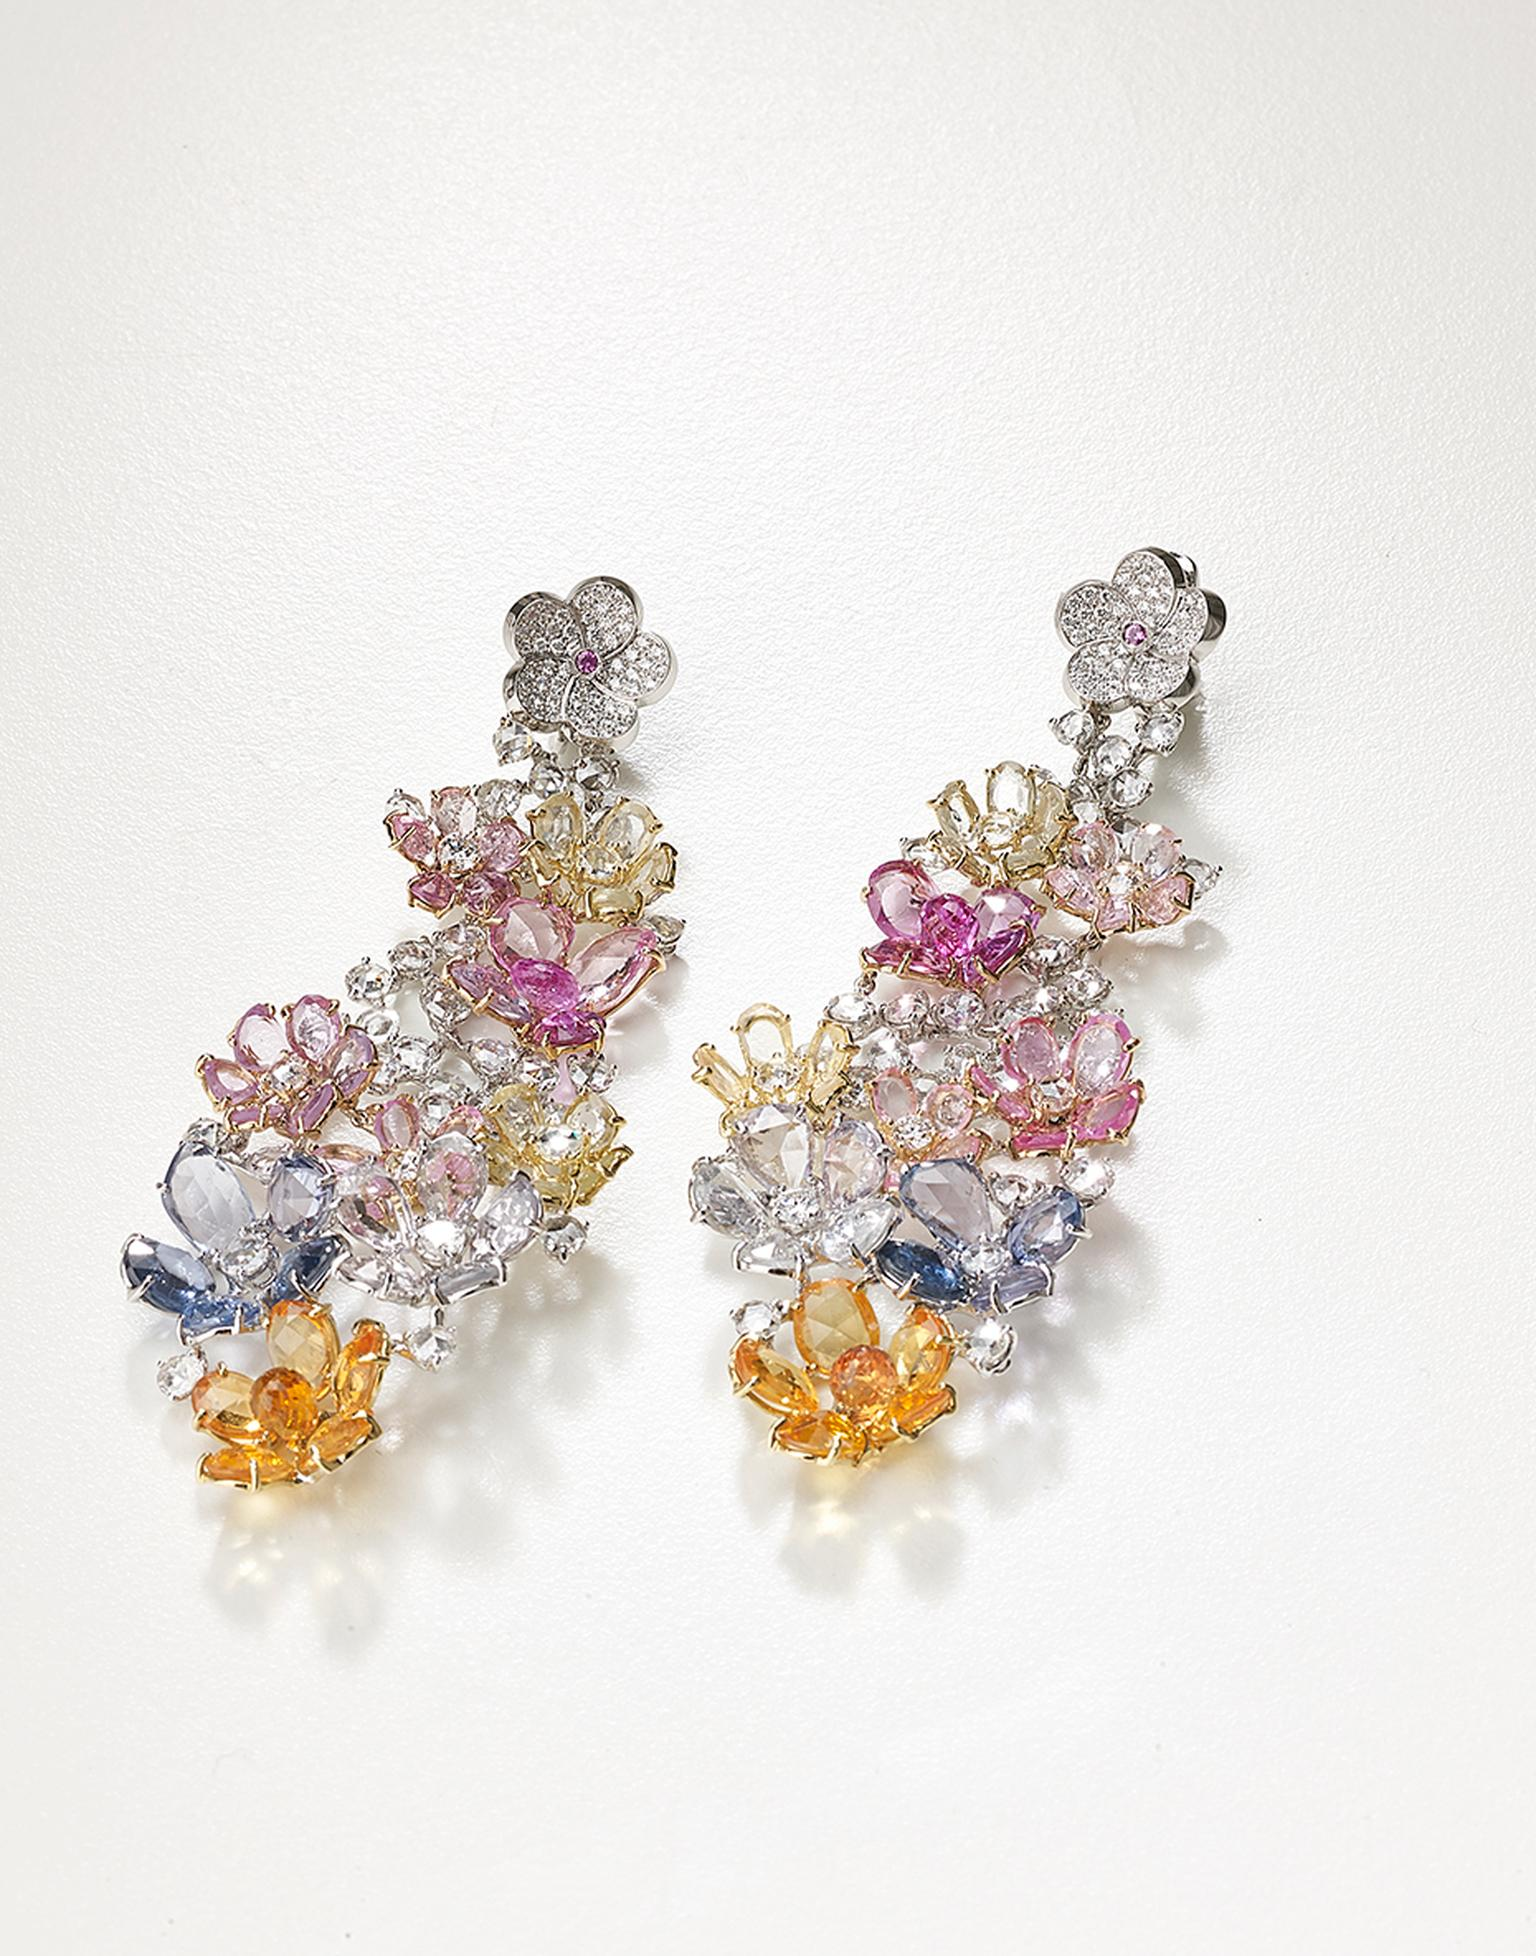 One-of-a-kind Meissen earrings with multi-coloured sapphires and diamonds, from the Haute Couture collection.